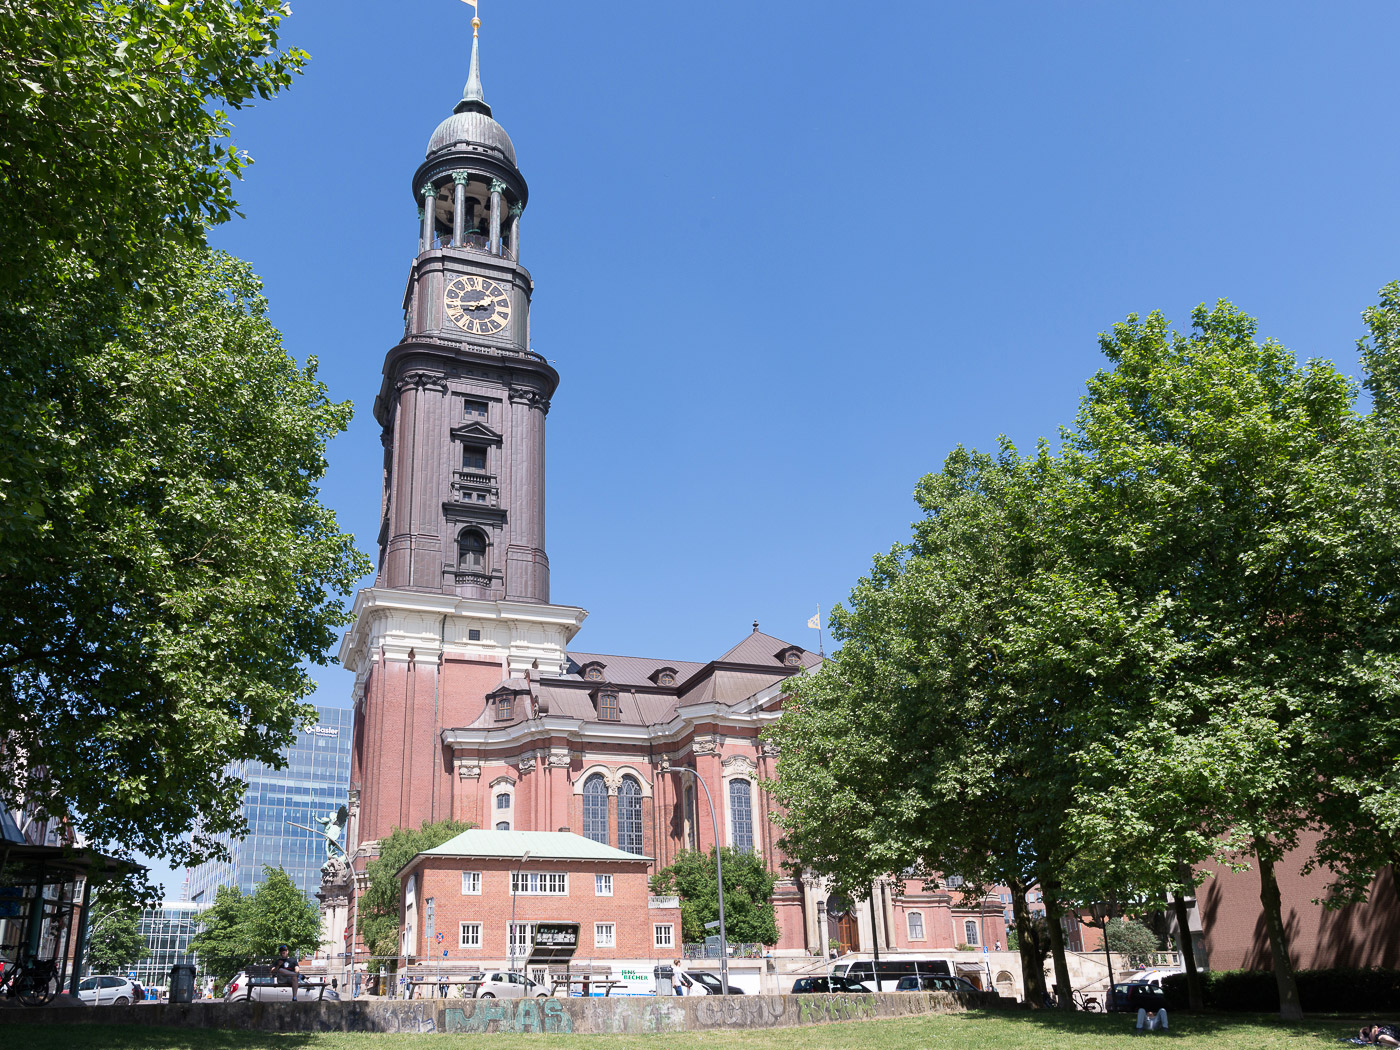 Besucherzentrum St. Michaelis, Hamburg